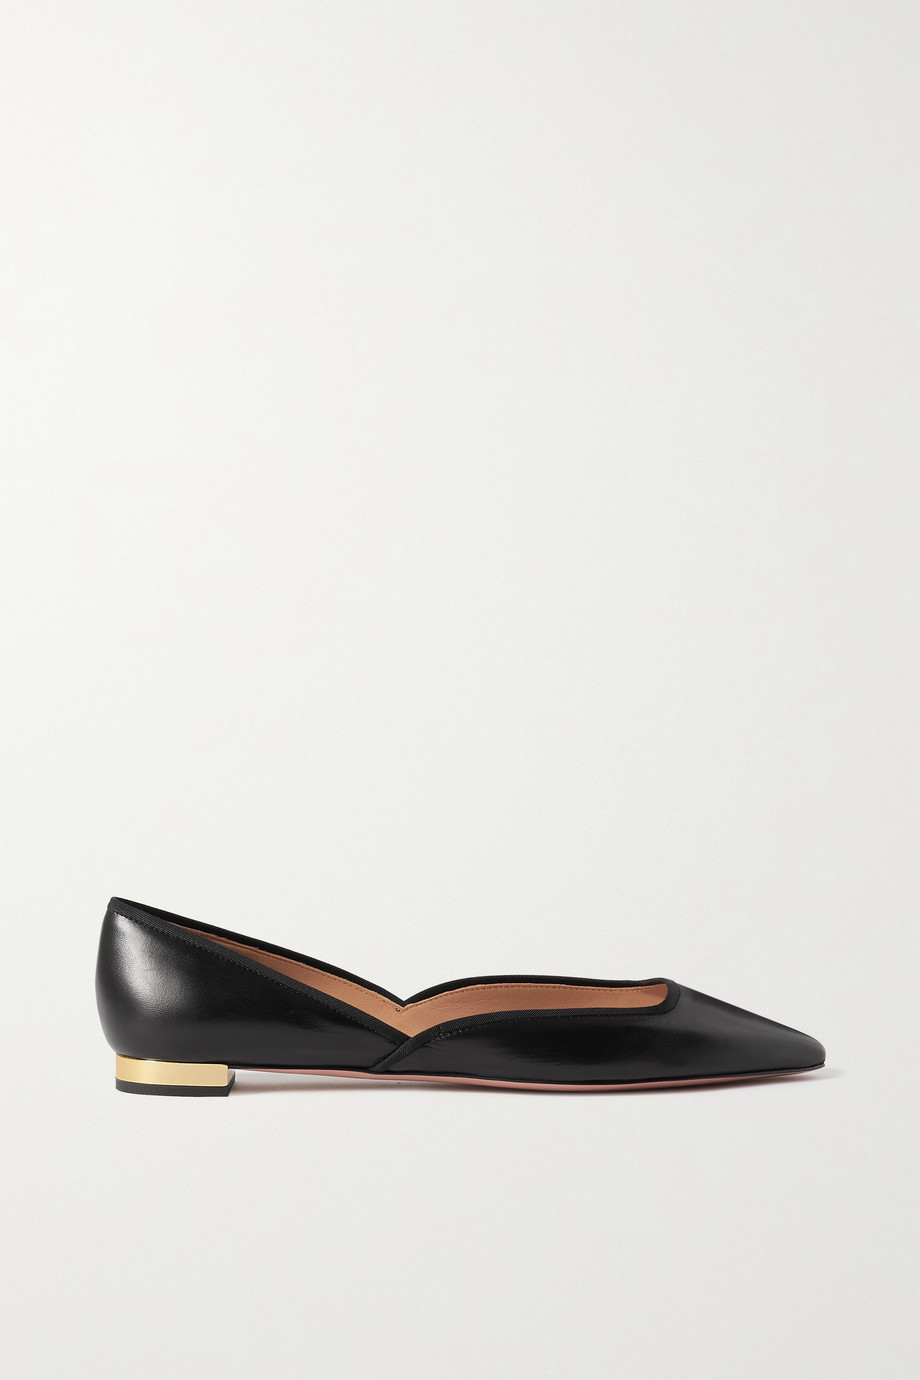 AQUAZZURA Maia grosgrain-trimmed leather ballet flats